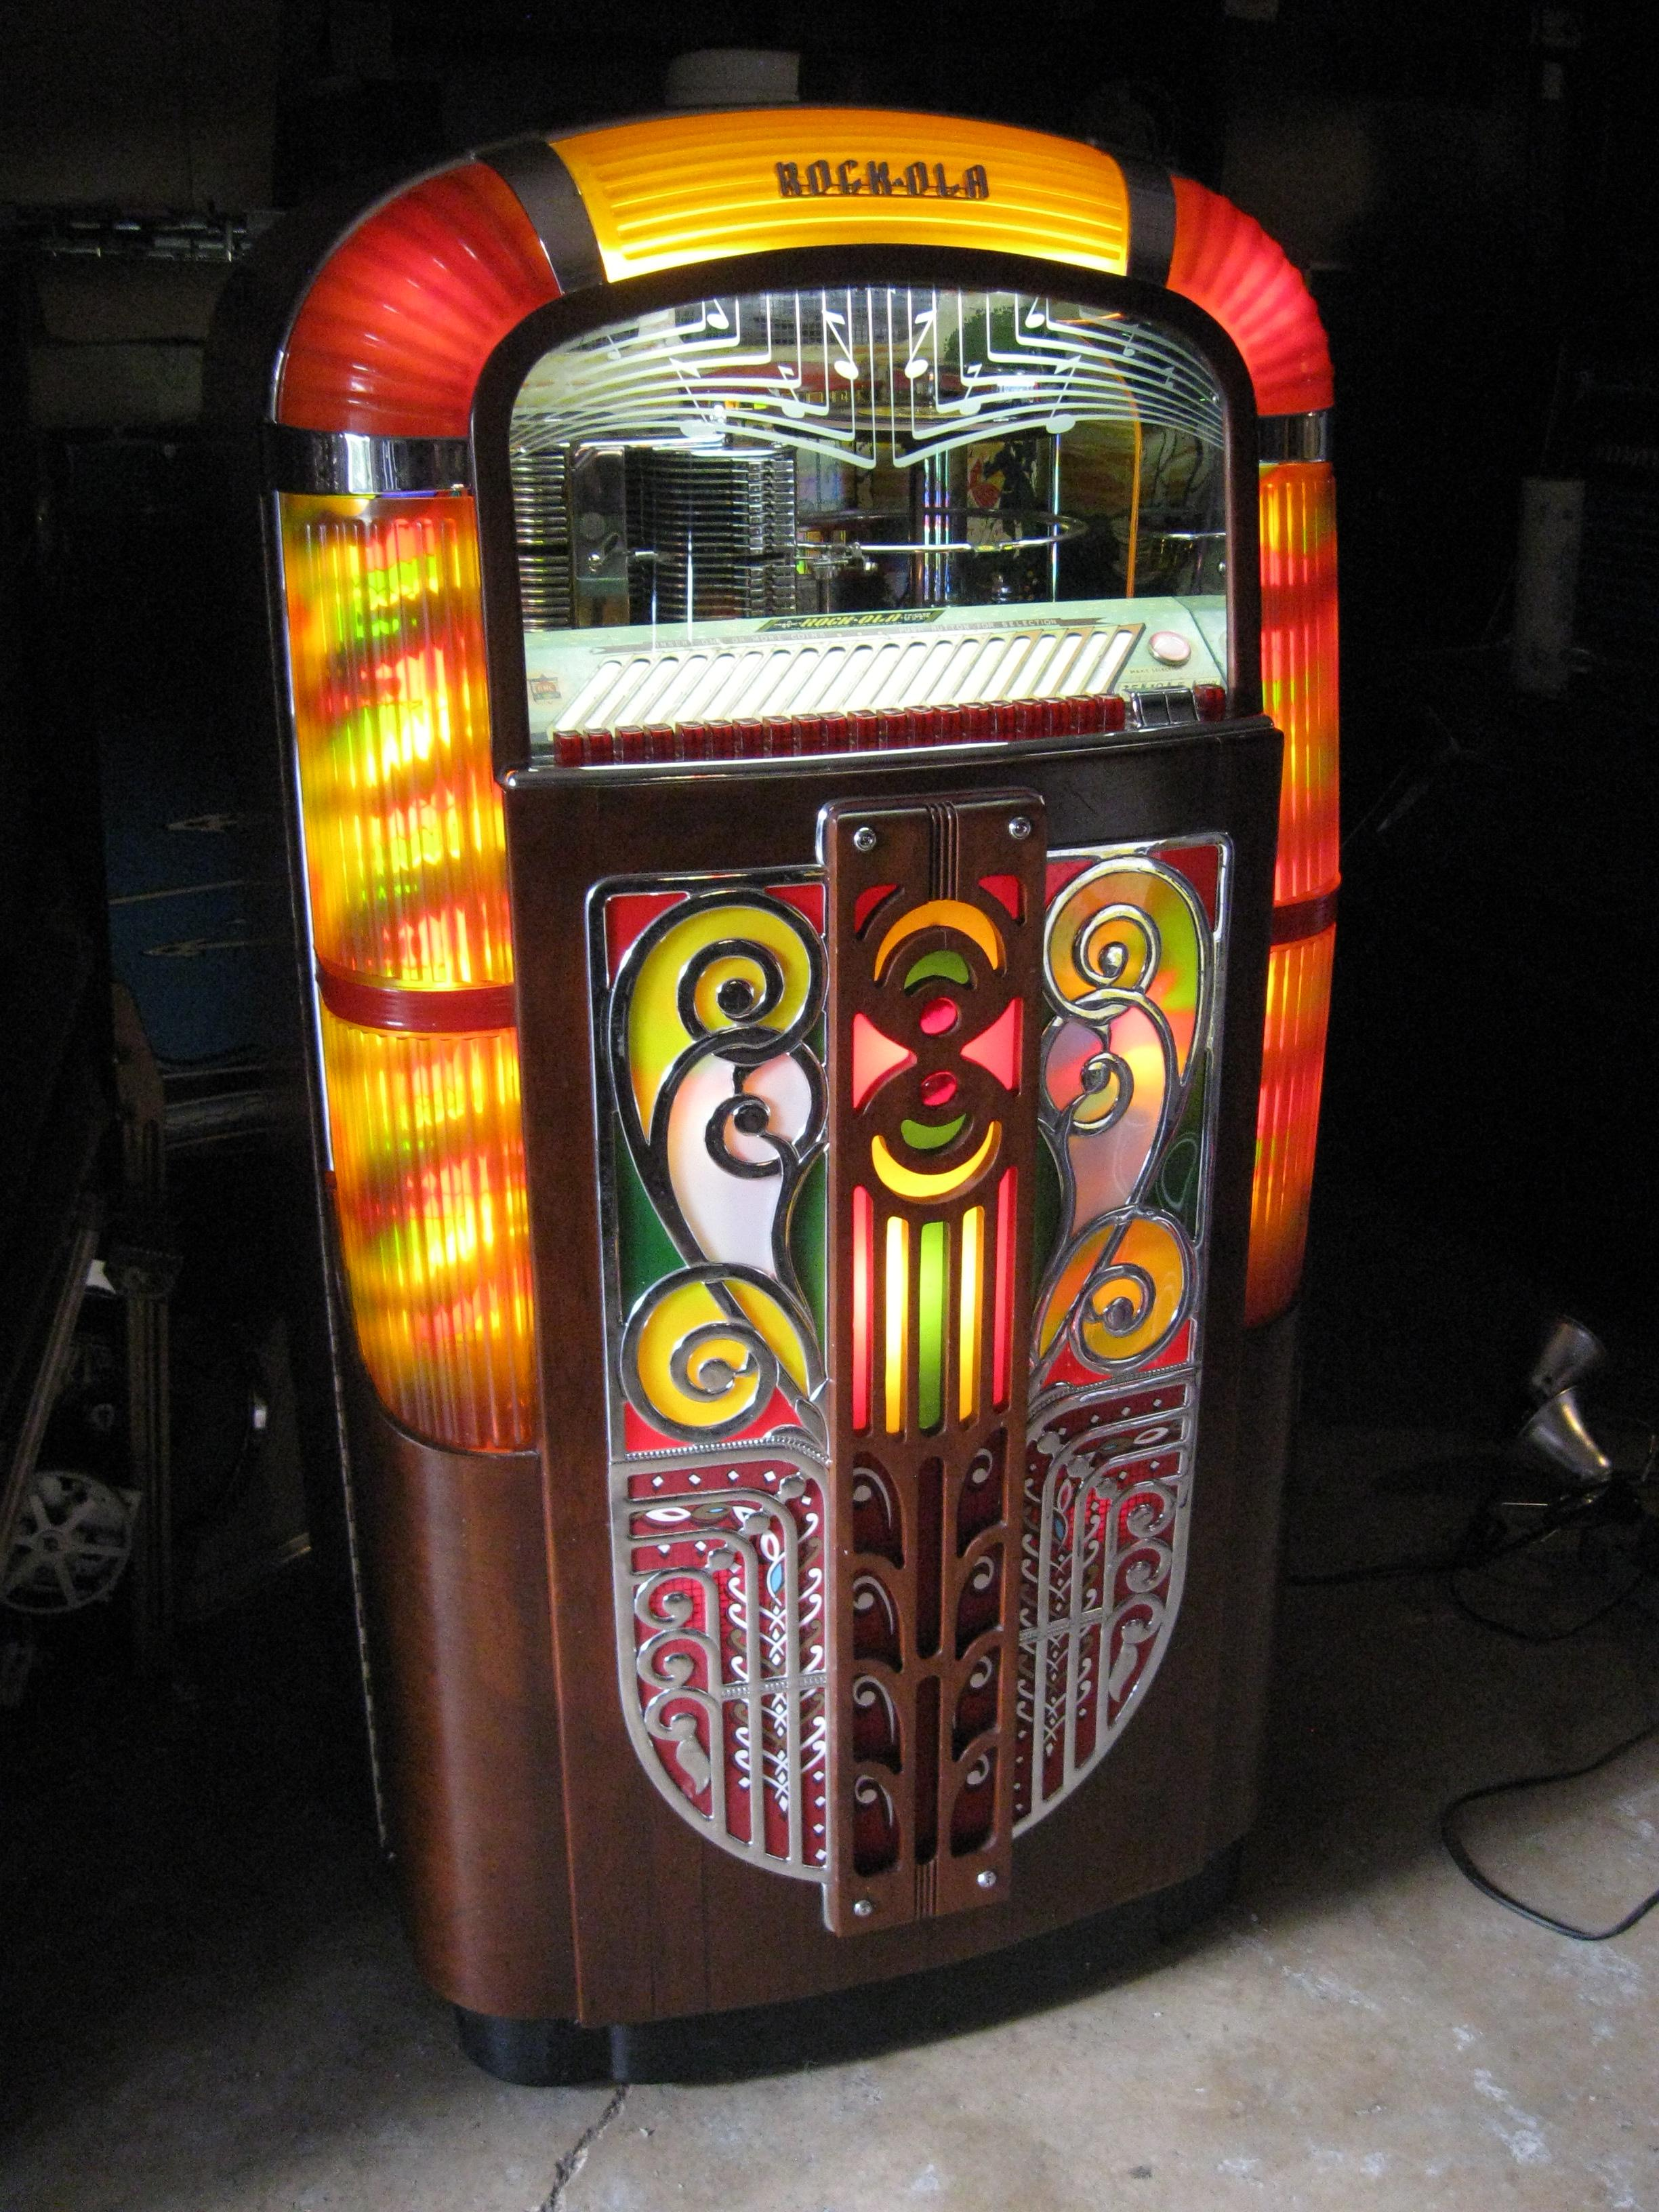 Rockola Jukebox model 1422 - Click Image to Close